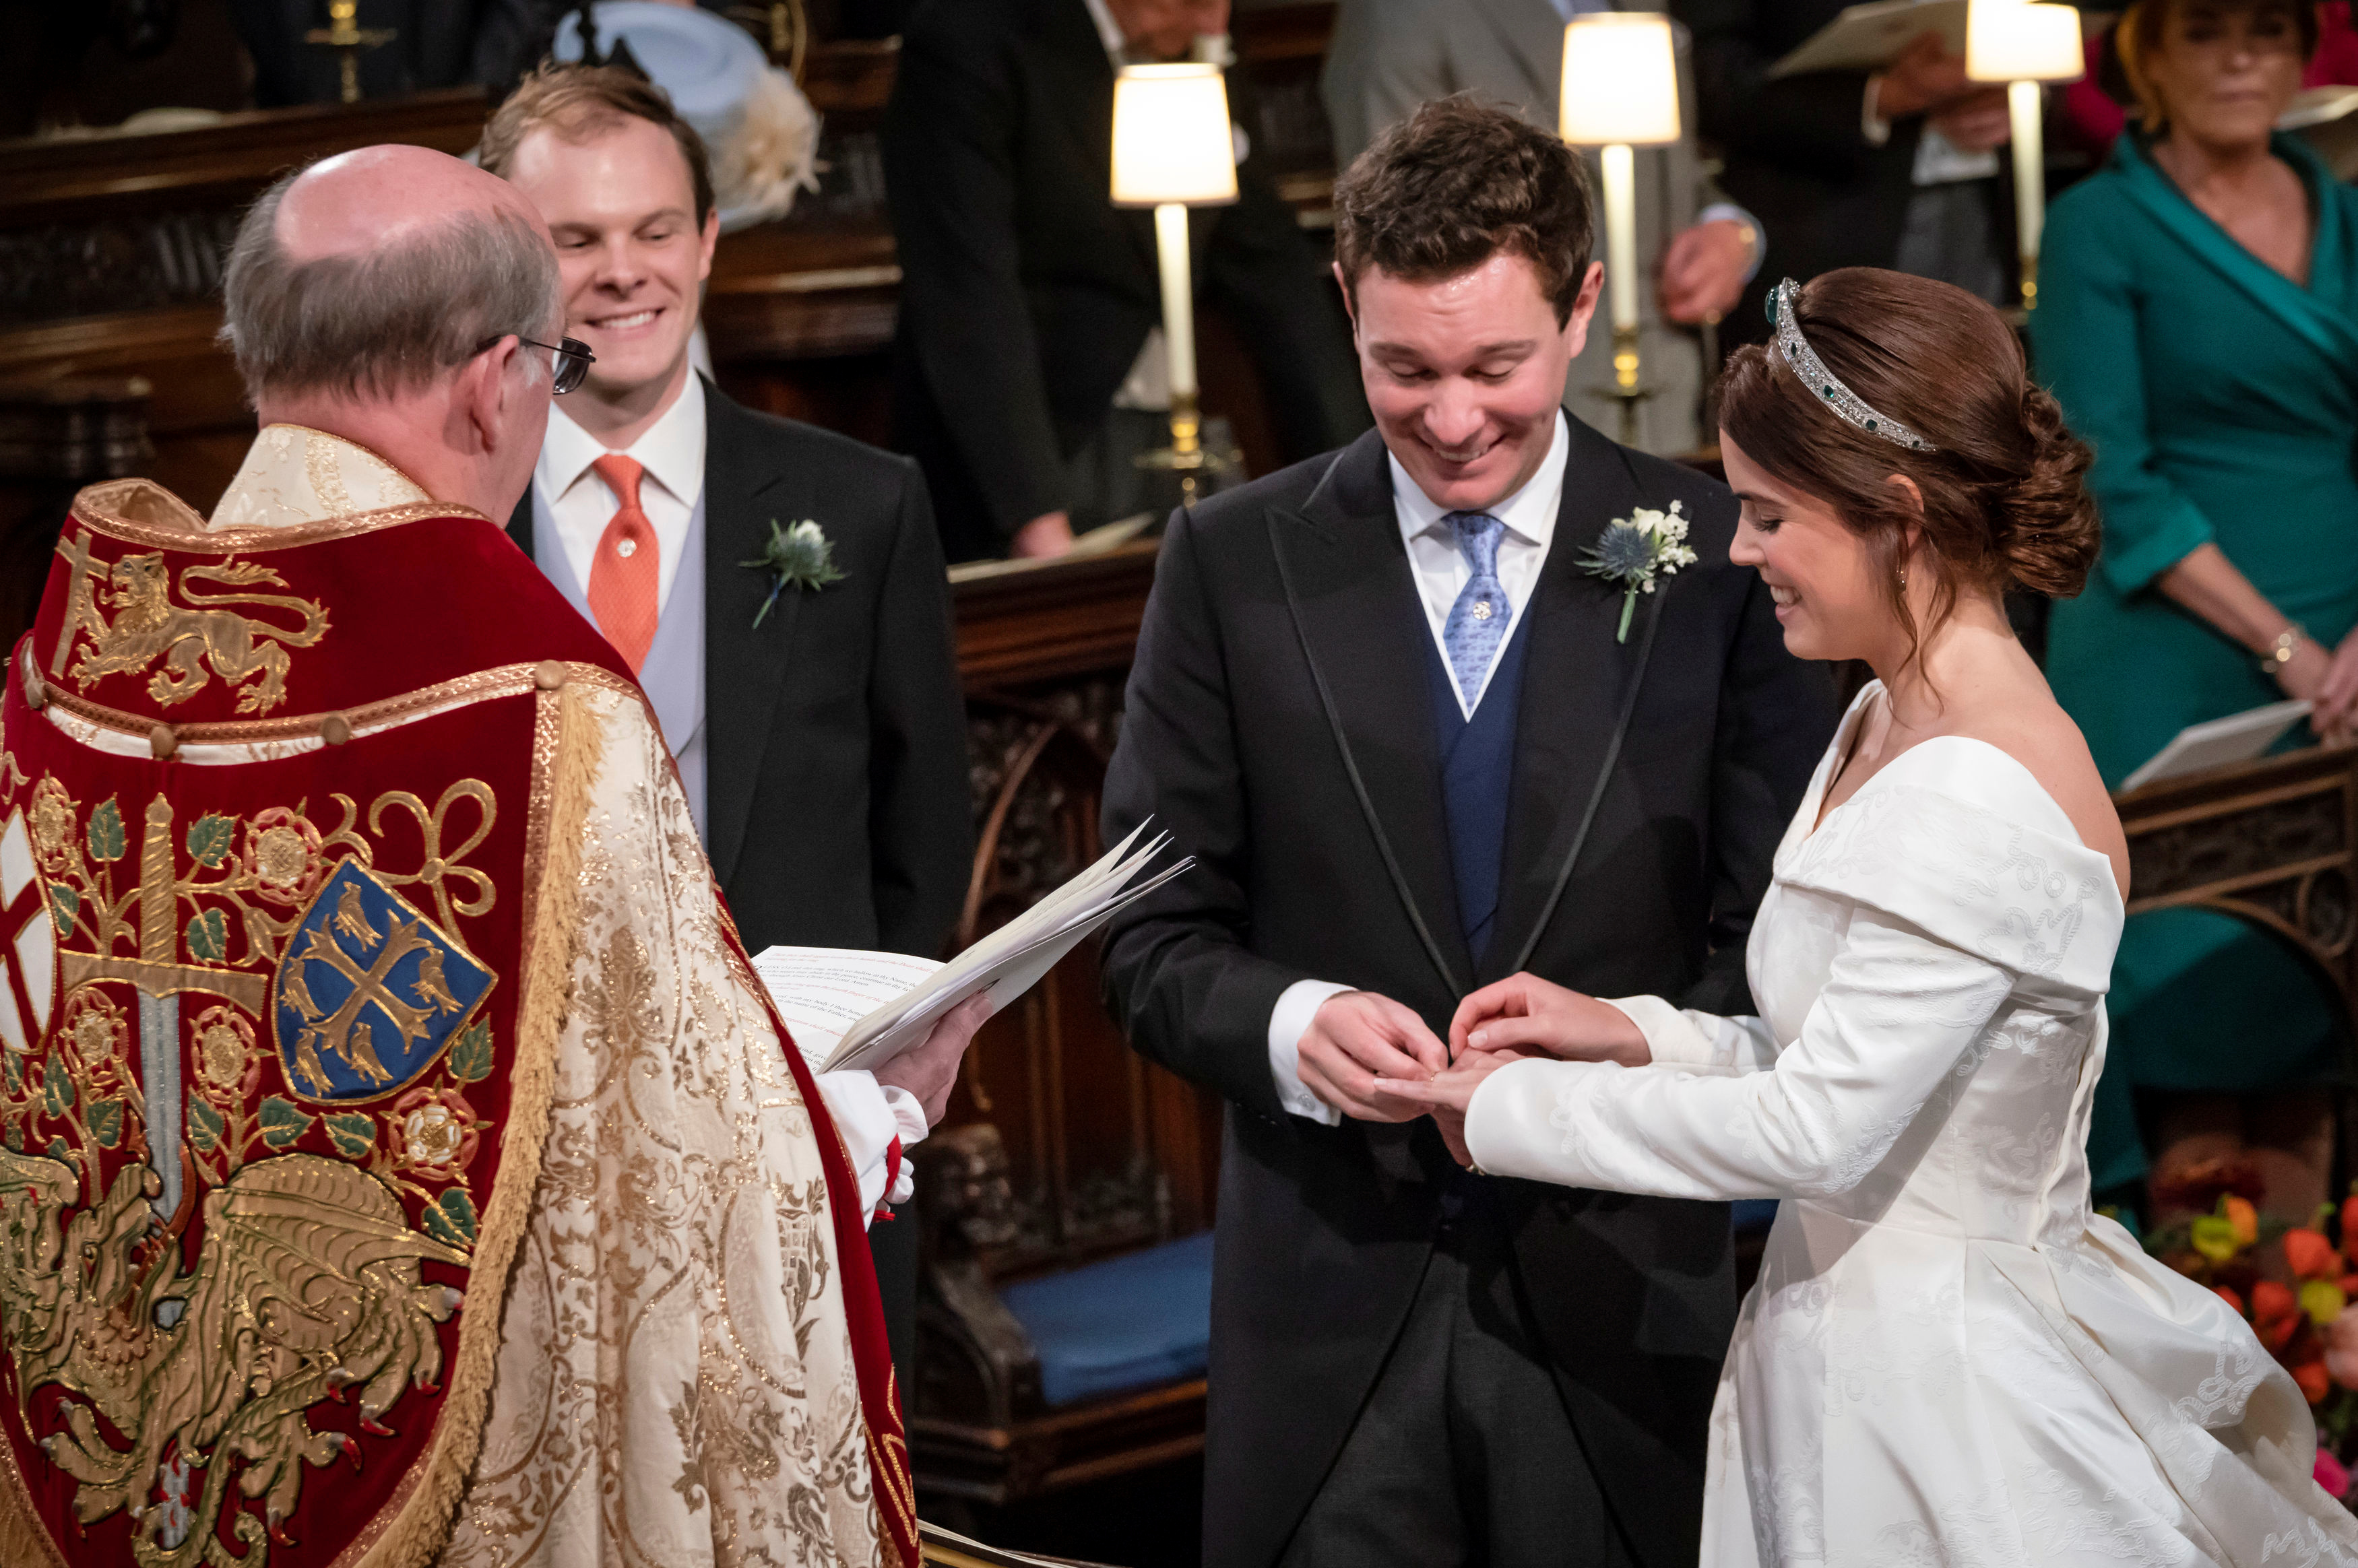 Princess Eugenie smiles as Jack Brooksbank put the ring on her finger during their wedding ceremony at St George's Chapel in Windsor Castle, Windsor, Britain, Oct.12, 2018.